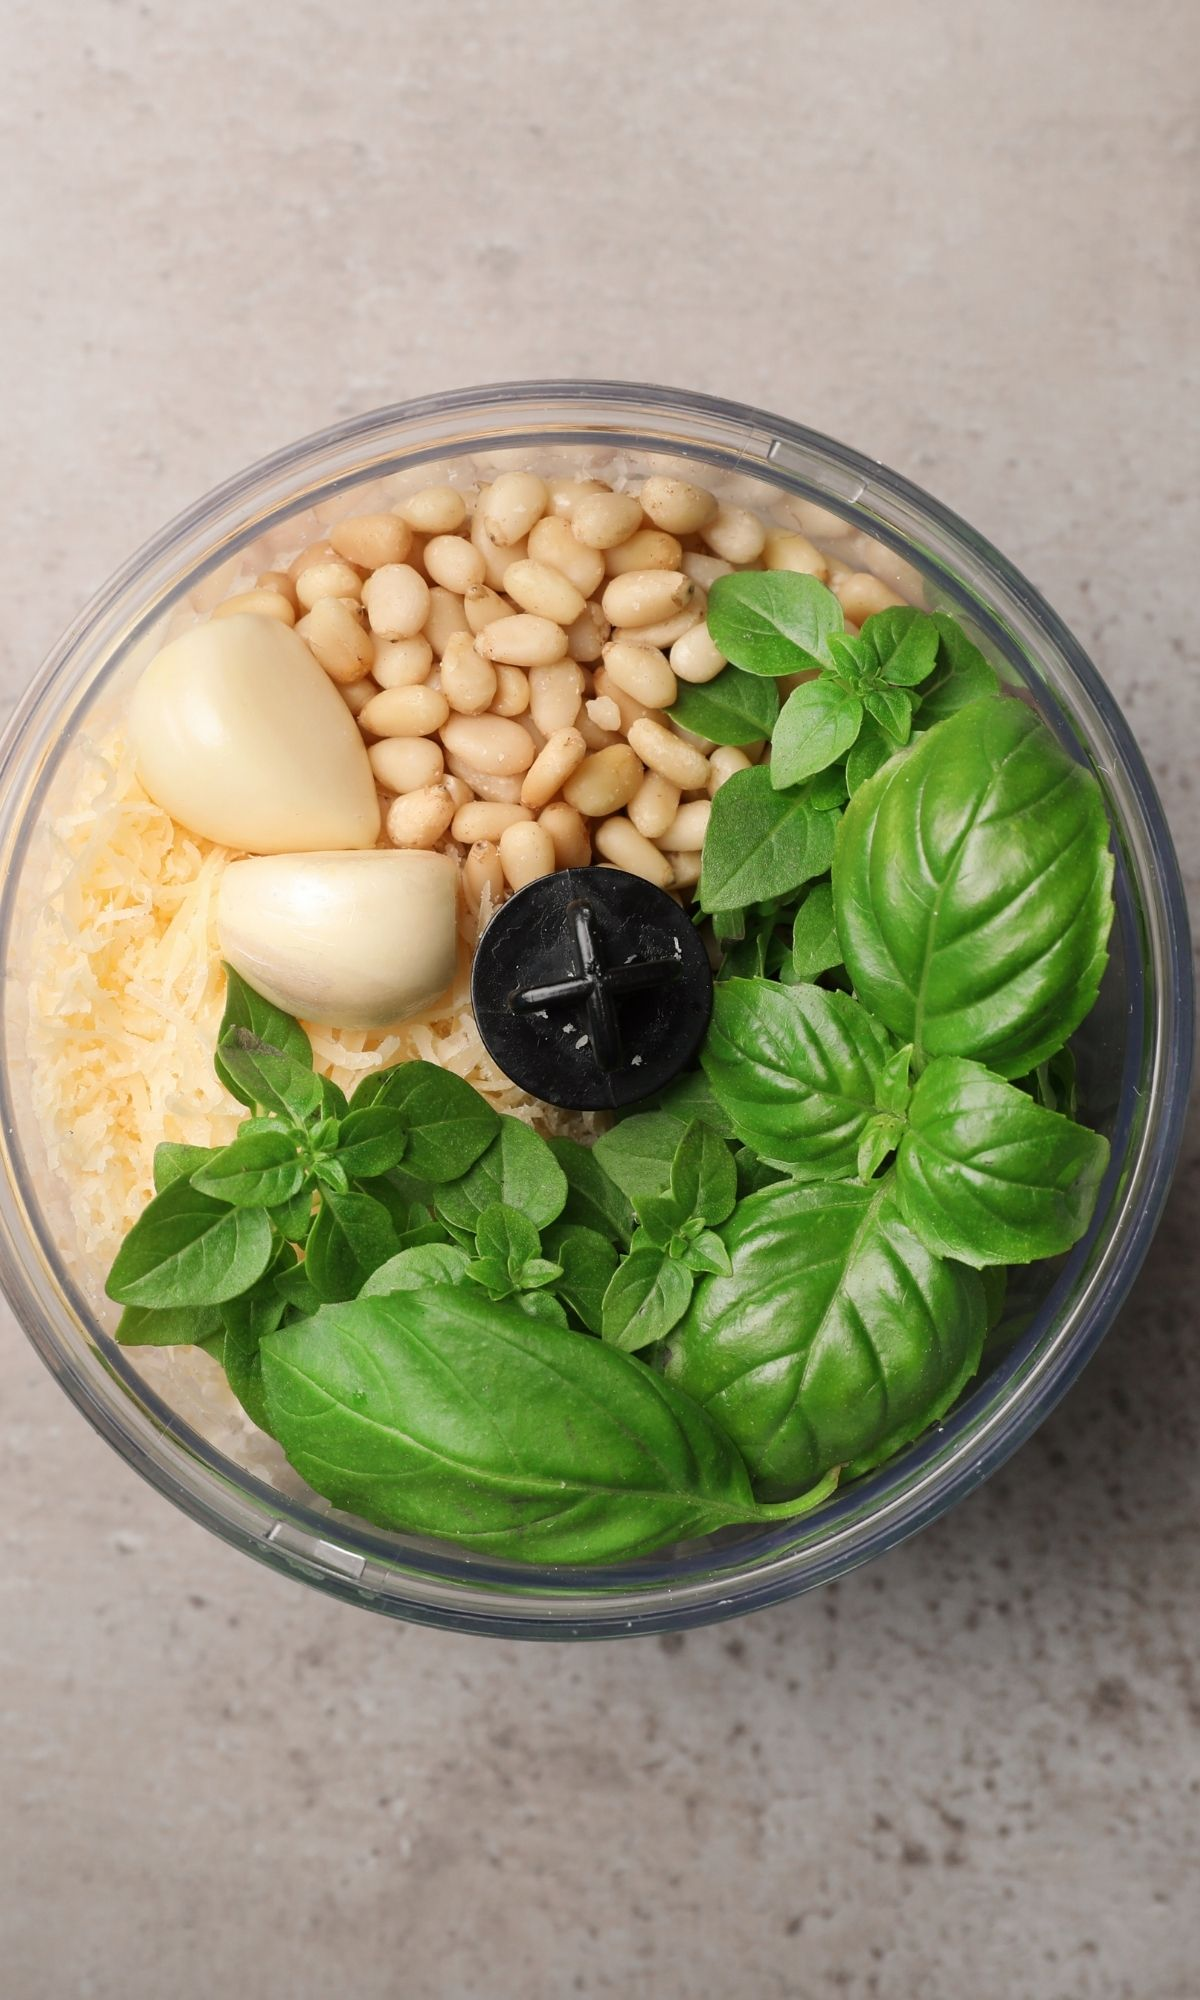 Add ingredients to food processor